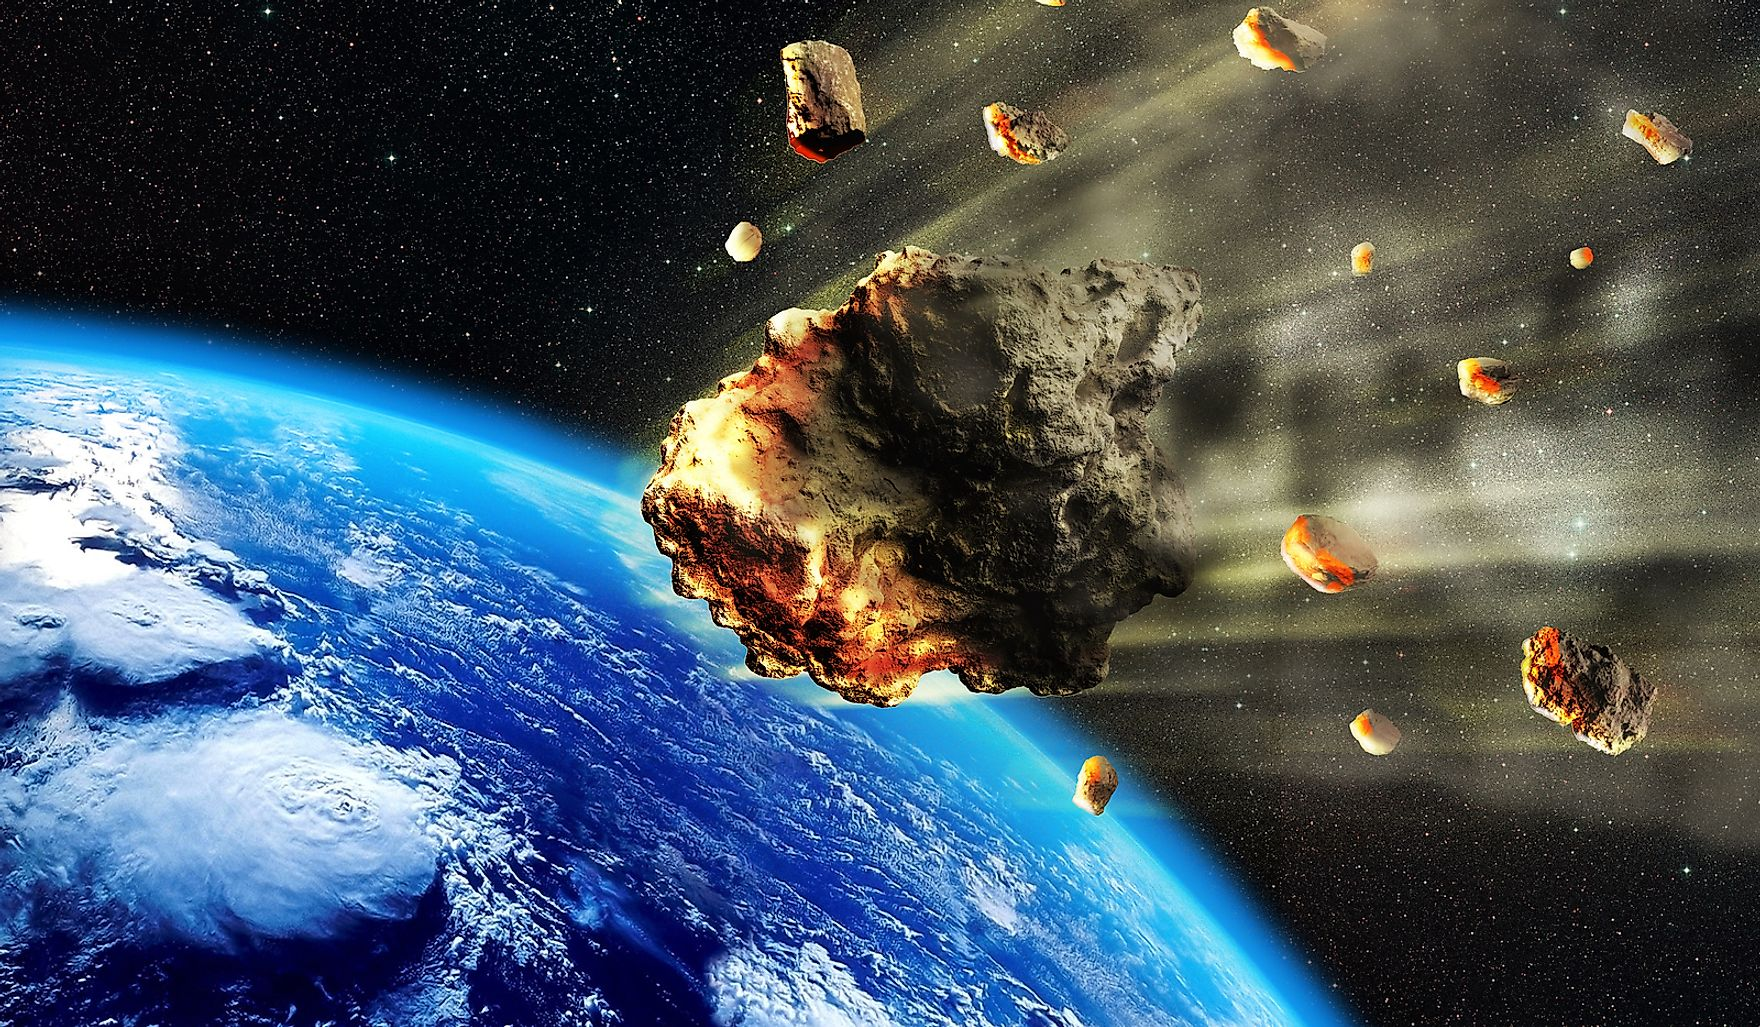 Asteroid impact on Earth is considered to be one of the major